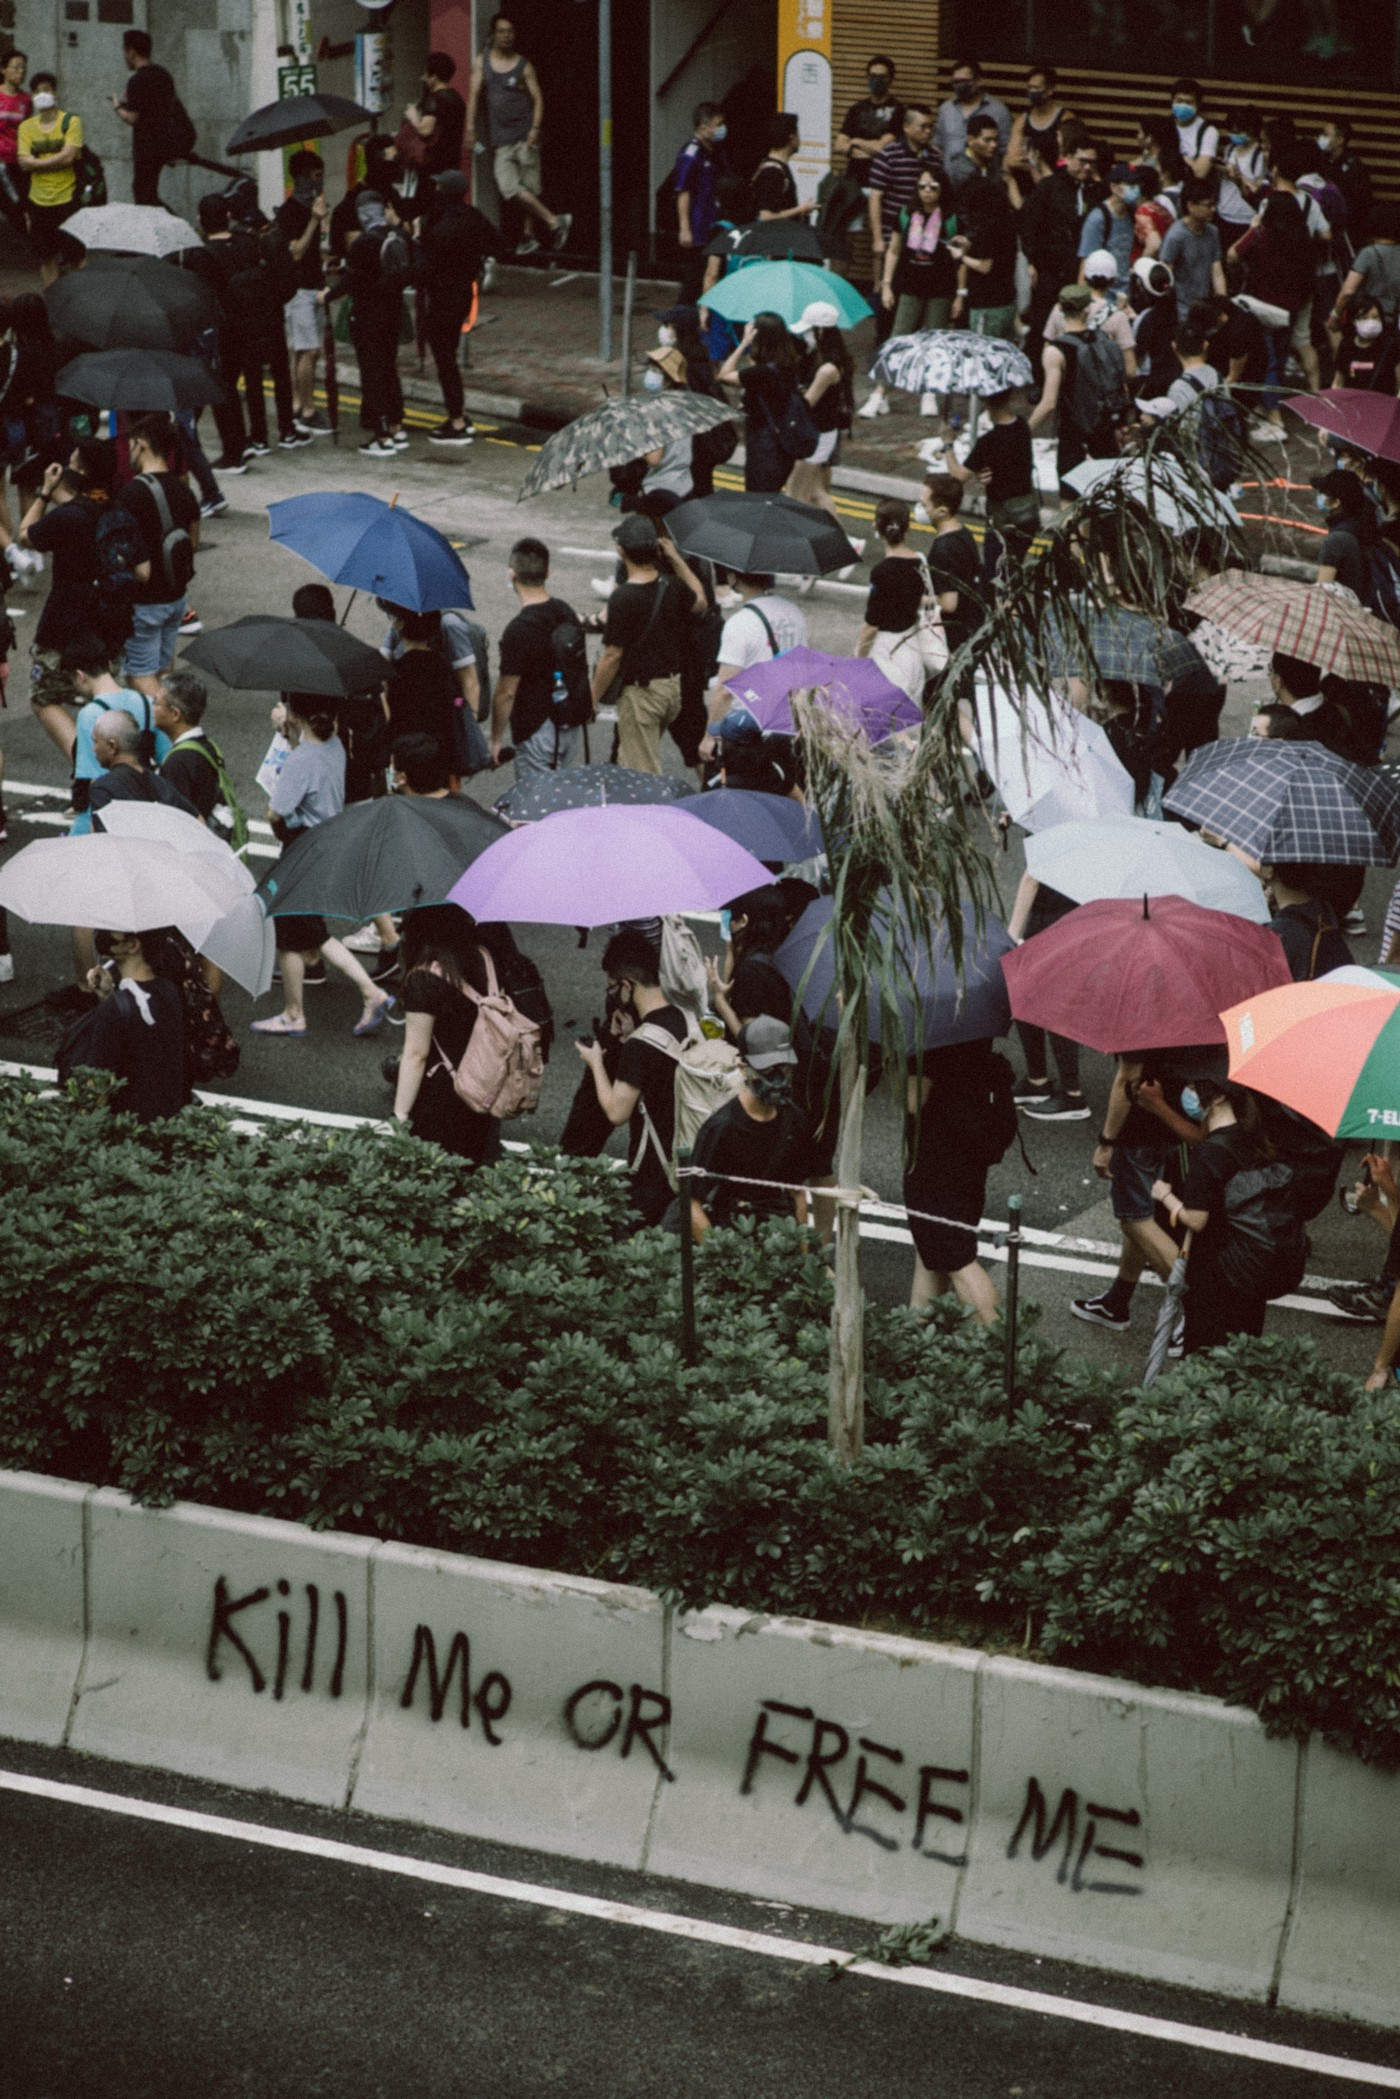 People protesting in Hong Kong.